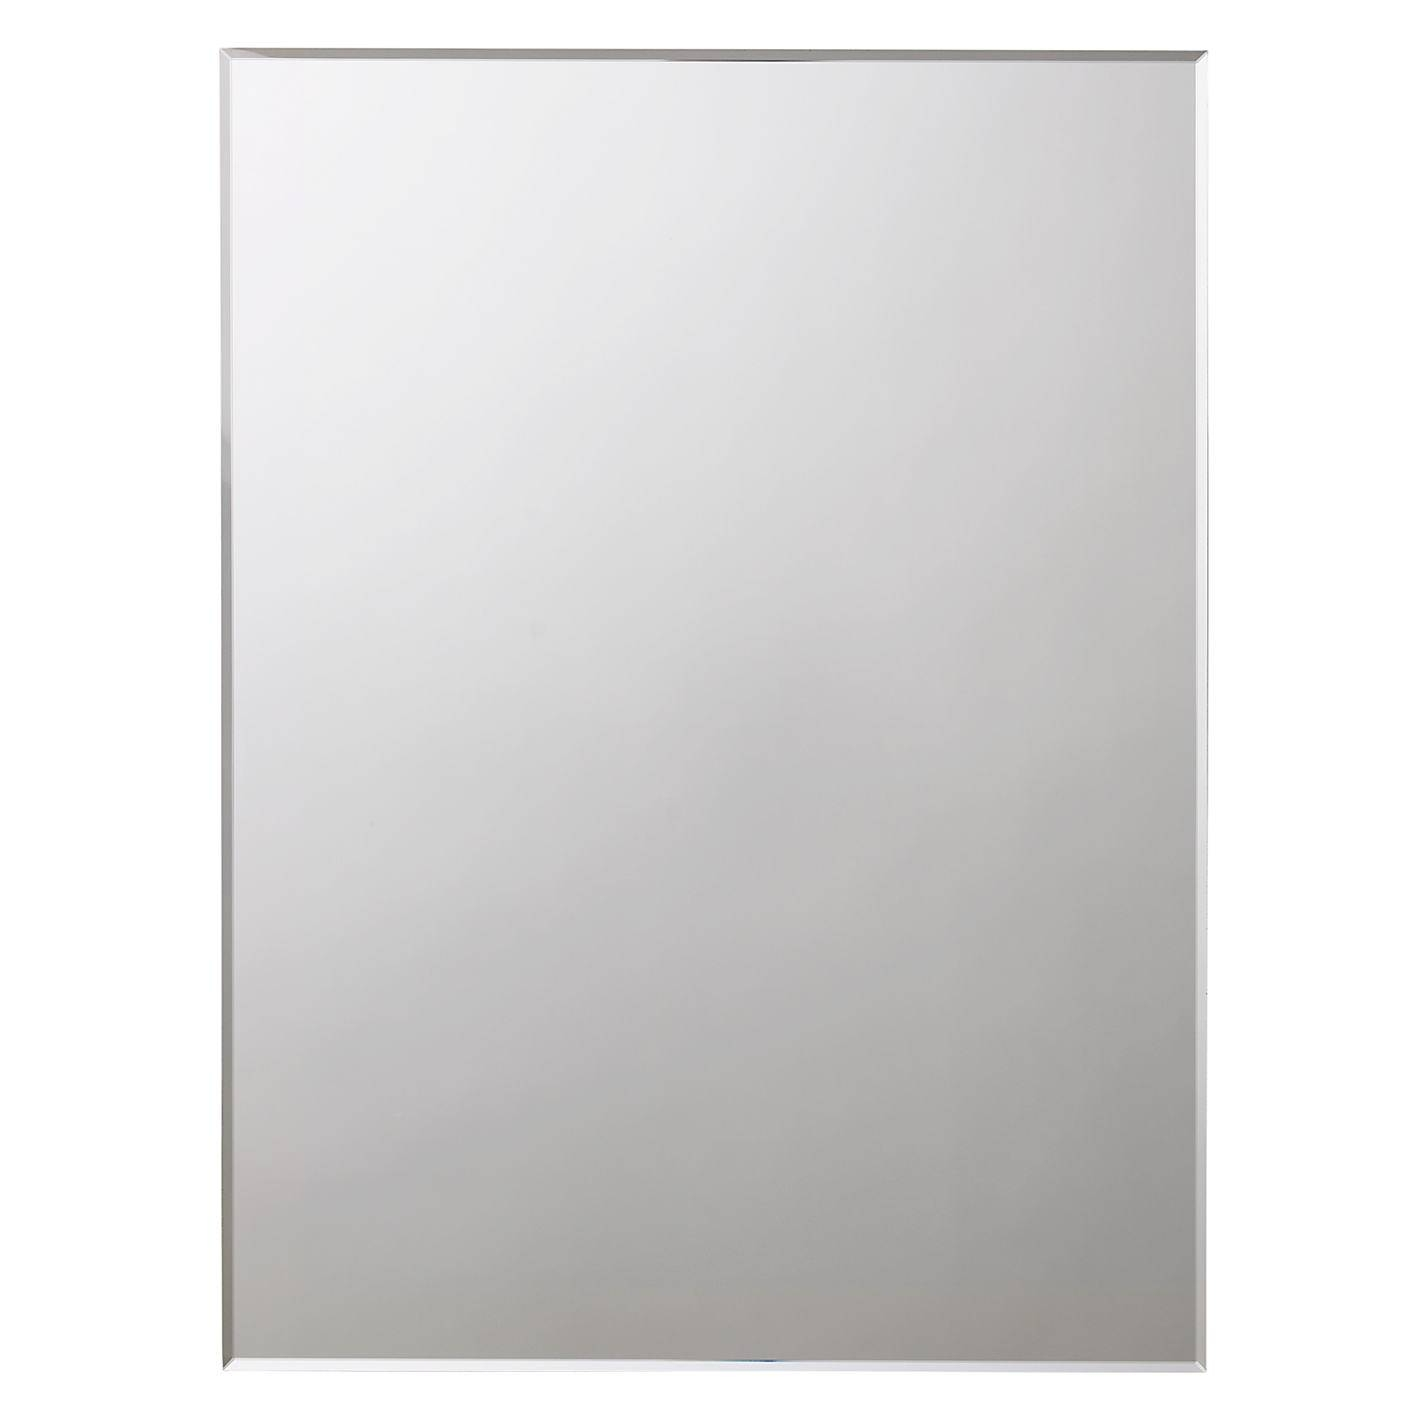 Bevelled Edge Bathroom Mirror – Harpsounds.co with Bevelled Mirrors (Image 6 of 25)